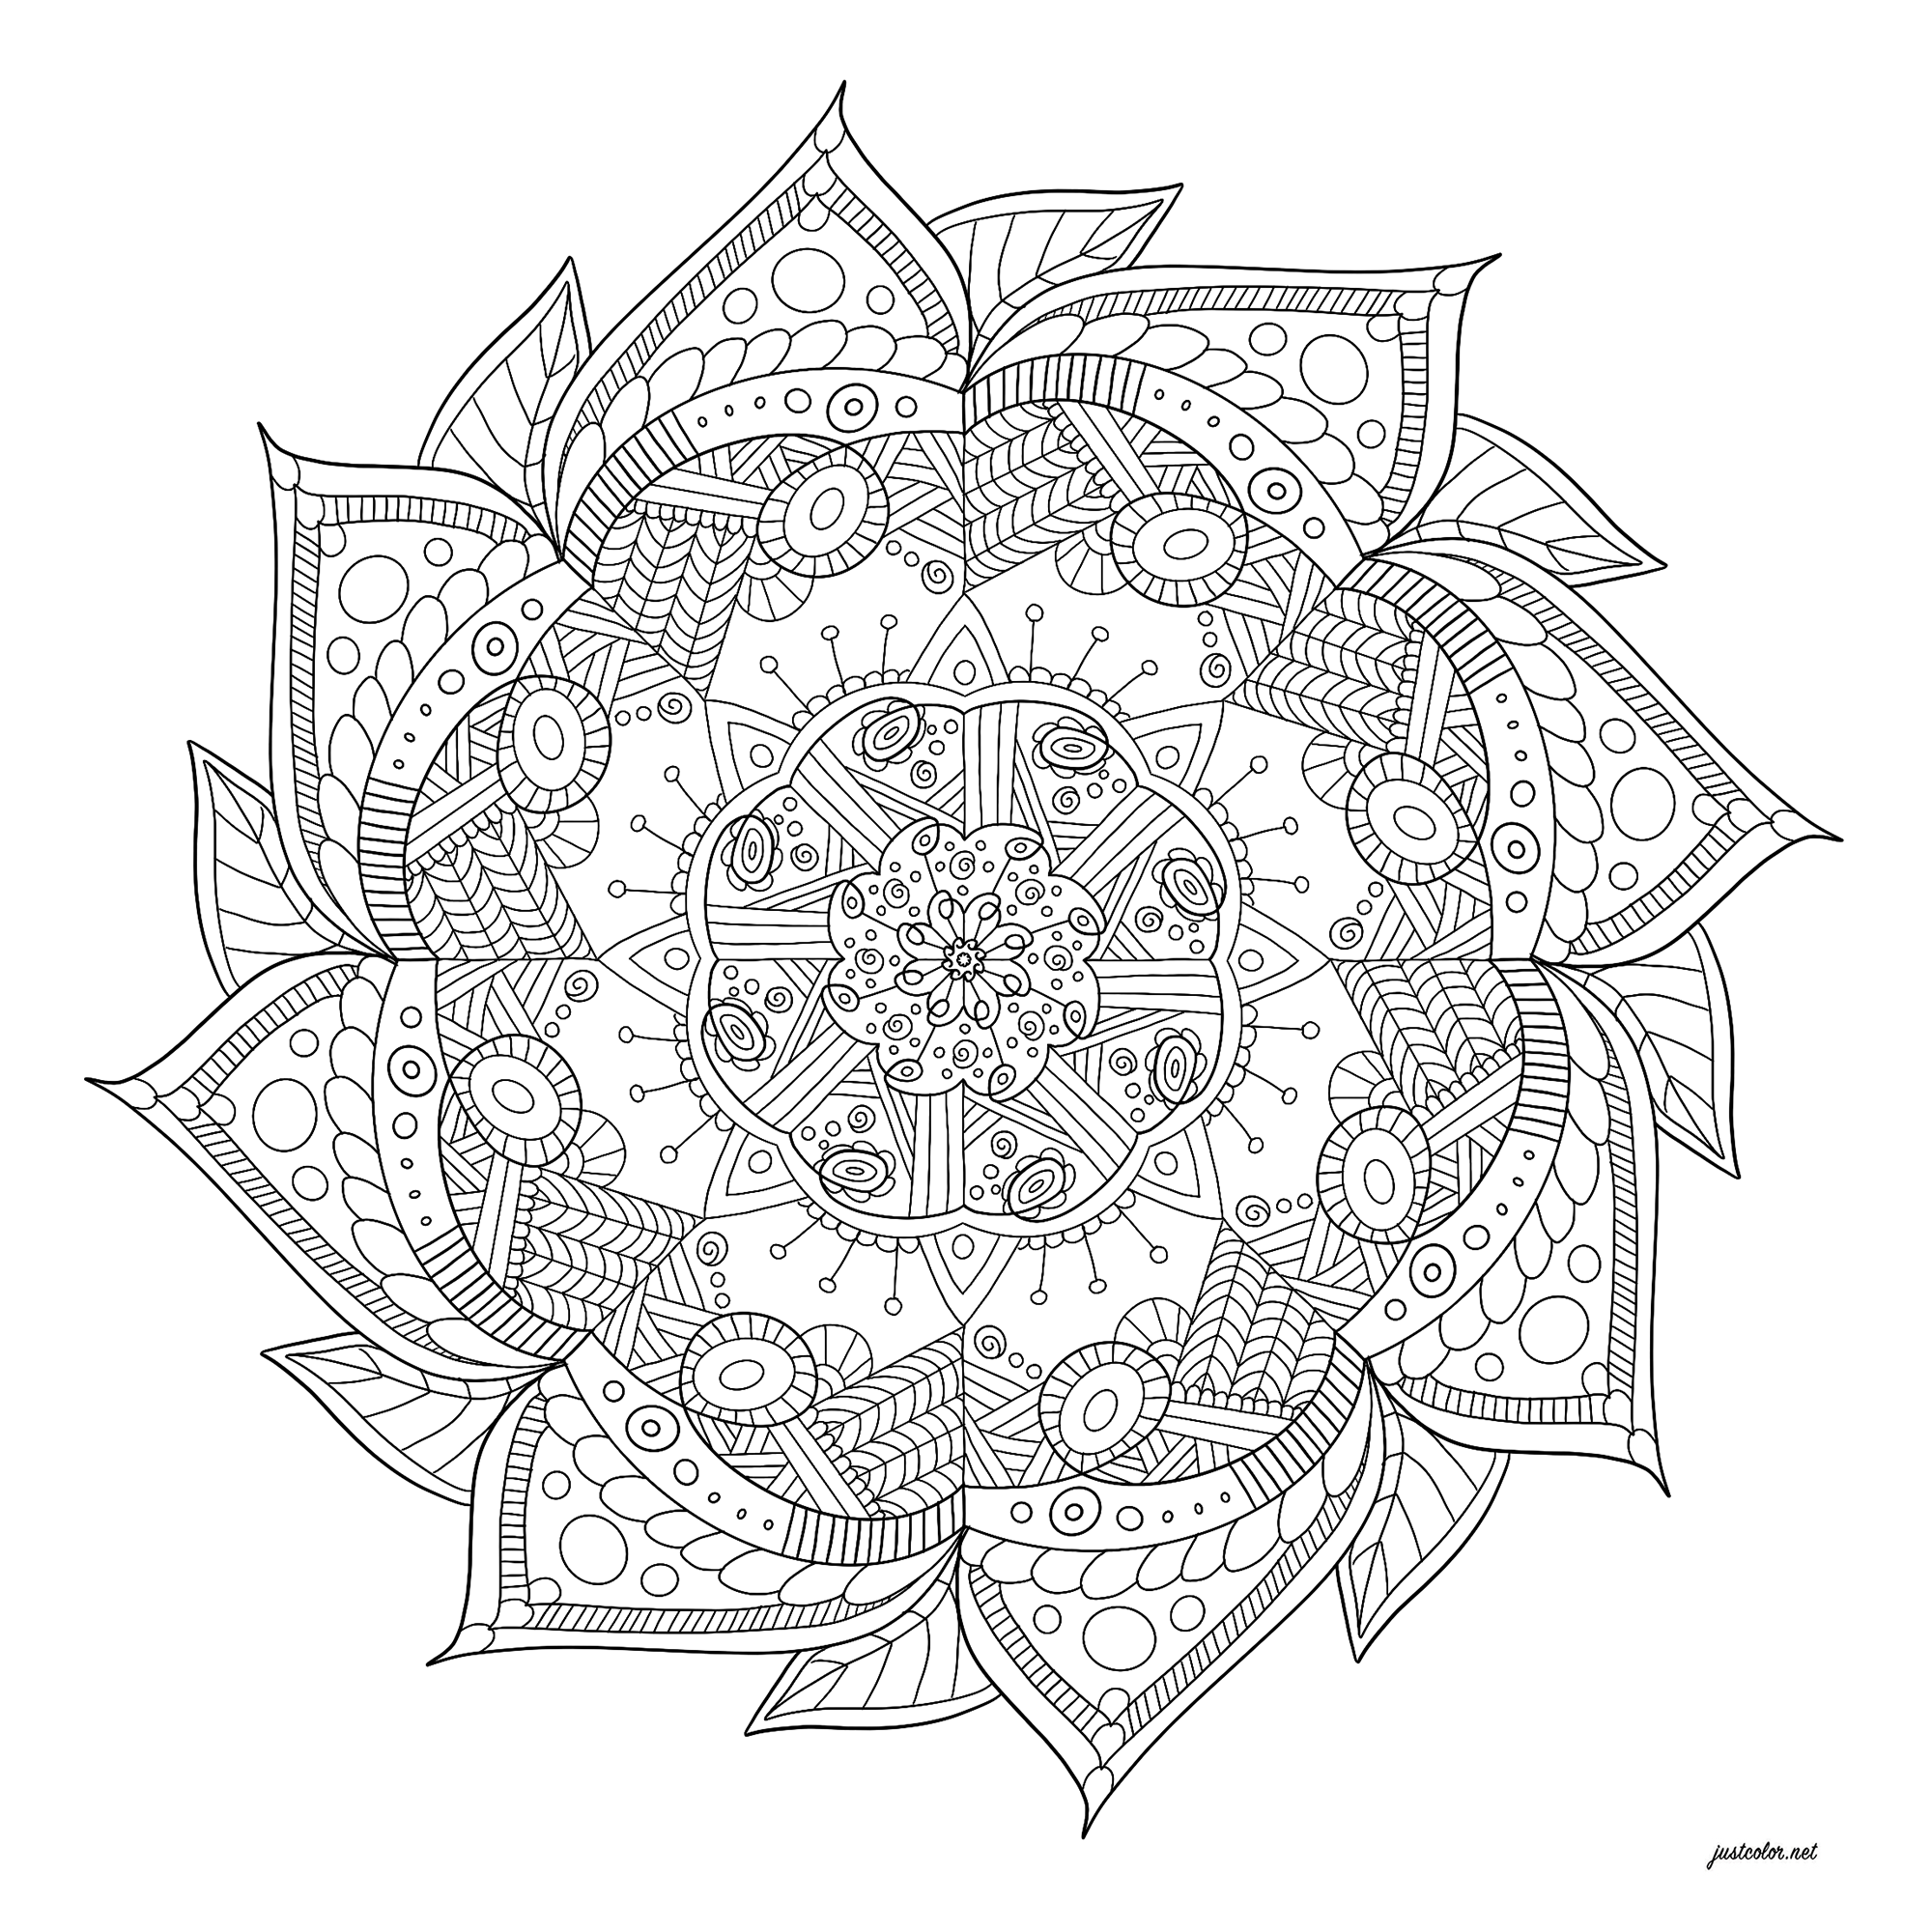 Relaxing mandala with abstract patterns